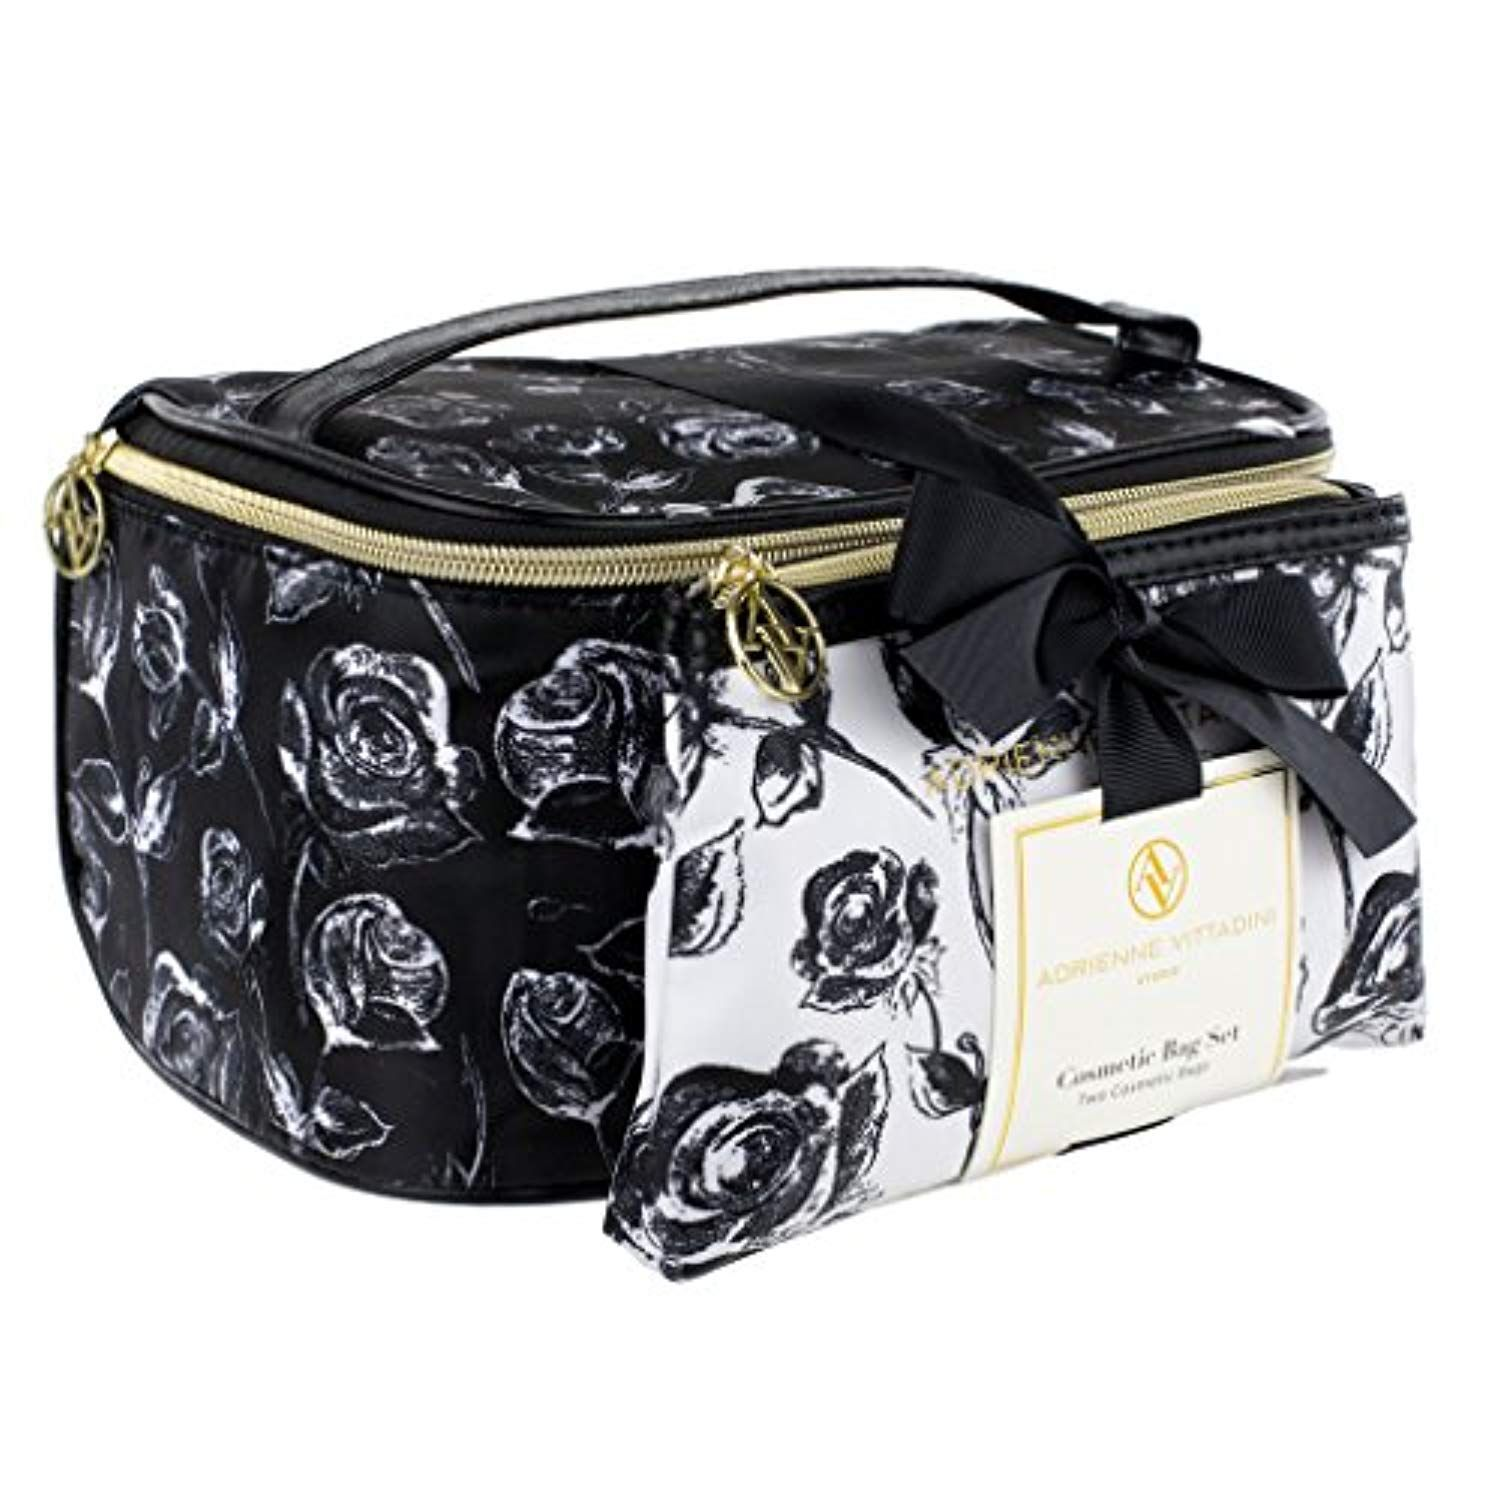 363c66dd93e Adrienne Vittadini Makeup Bag Set  Nylon Carry On Toiletry...   Click image  for more details. (This is an affiliate link)  mascarareview